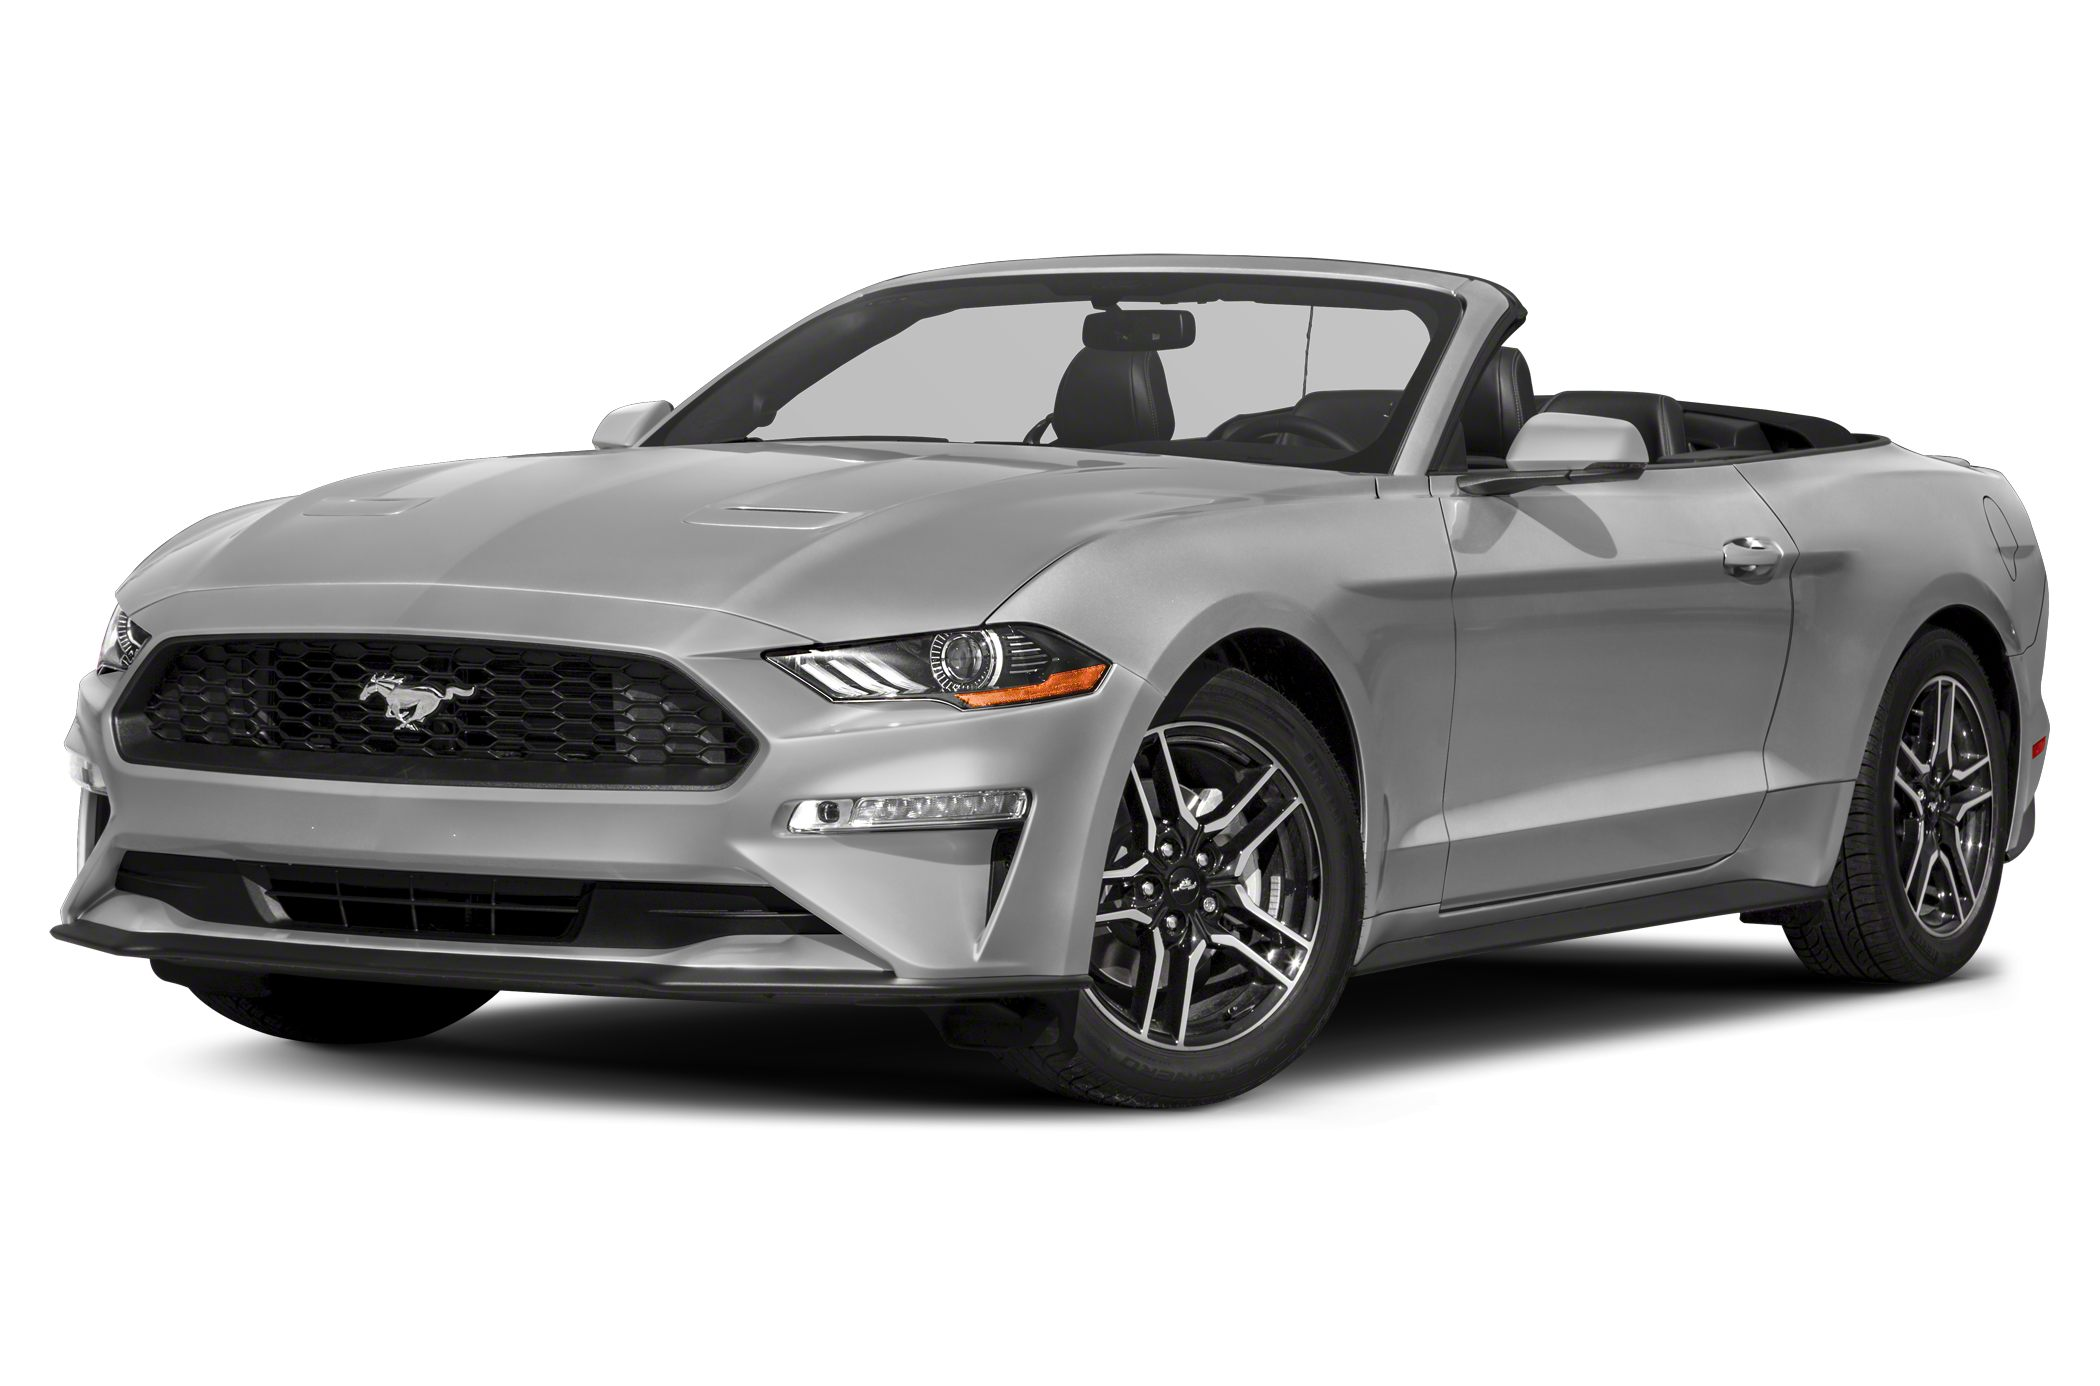 Used Cars Under $2000 Elegant New 2018 ford Mustang Price Photos Reviews Safety Ratings